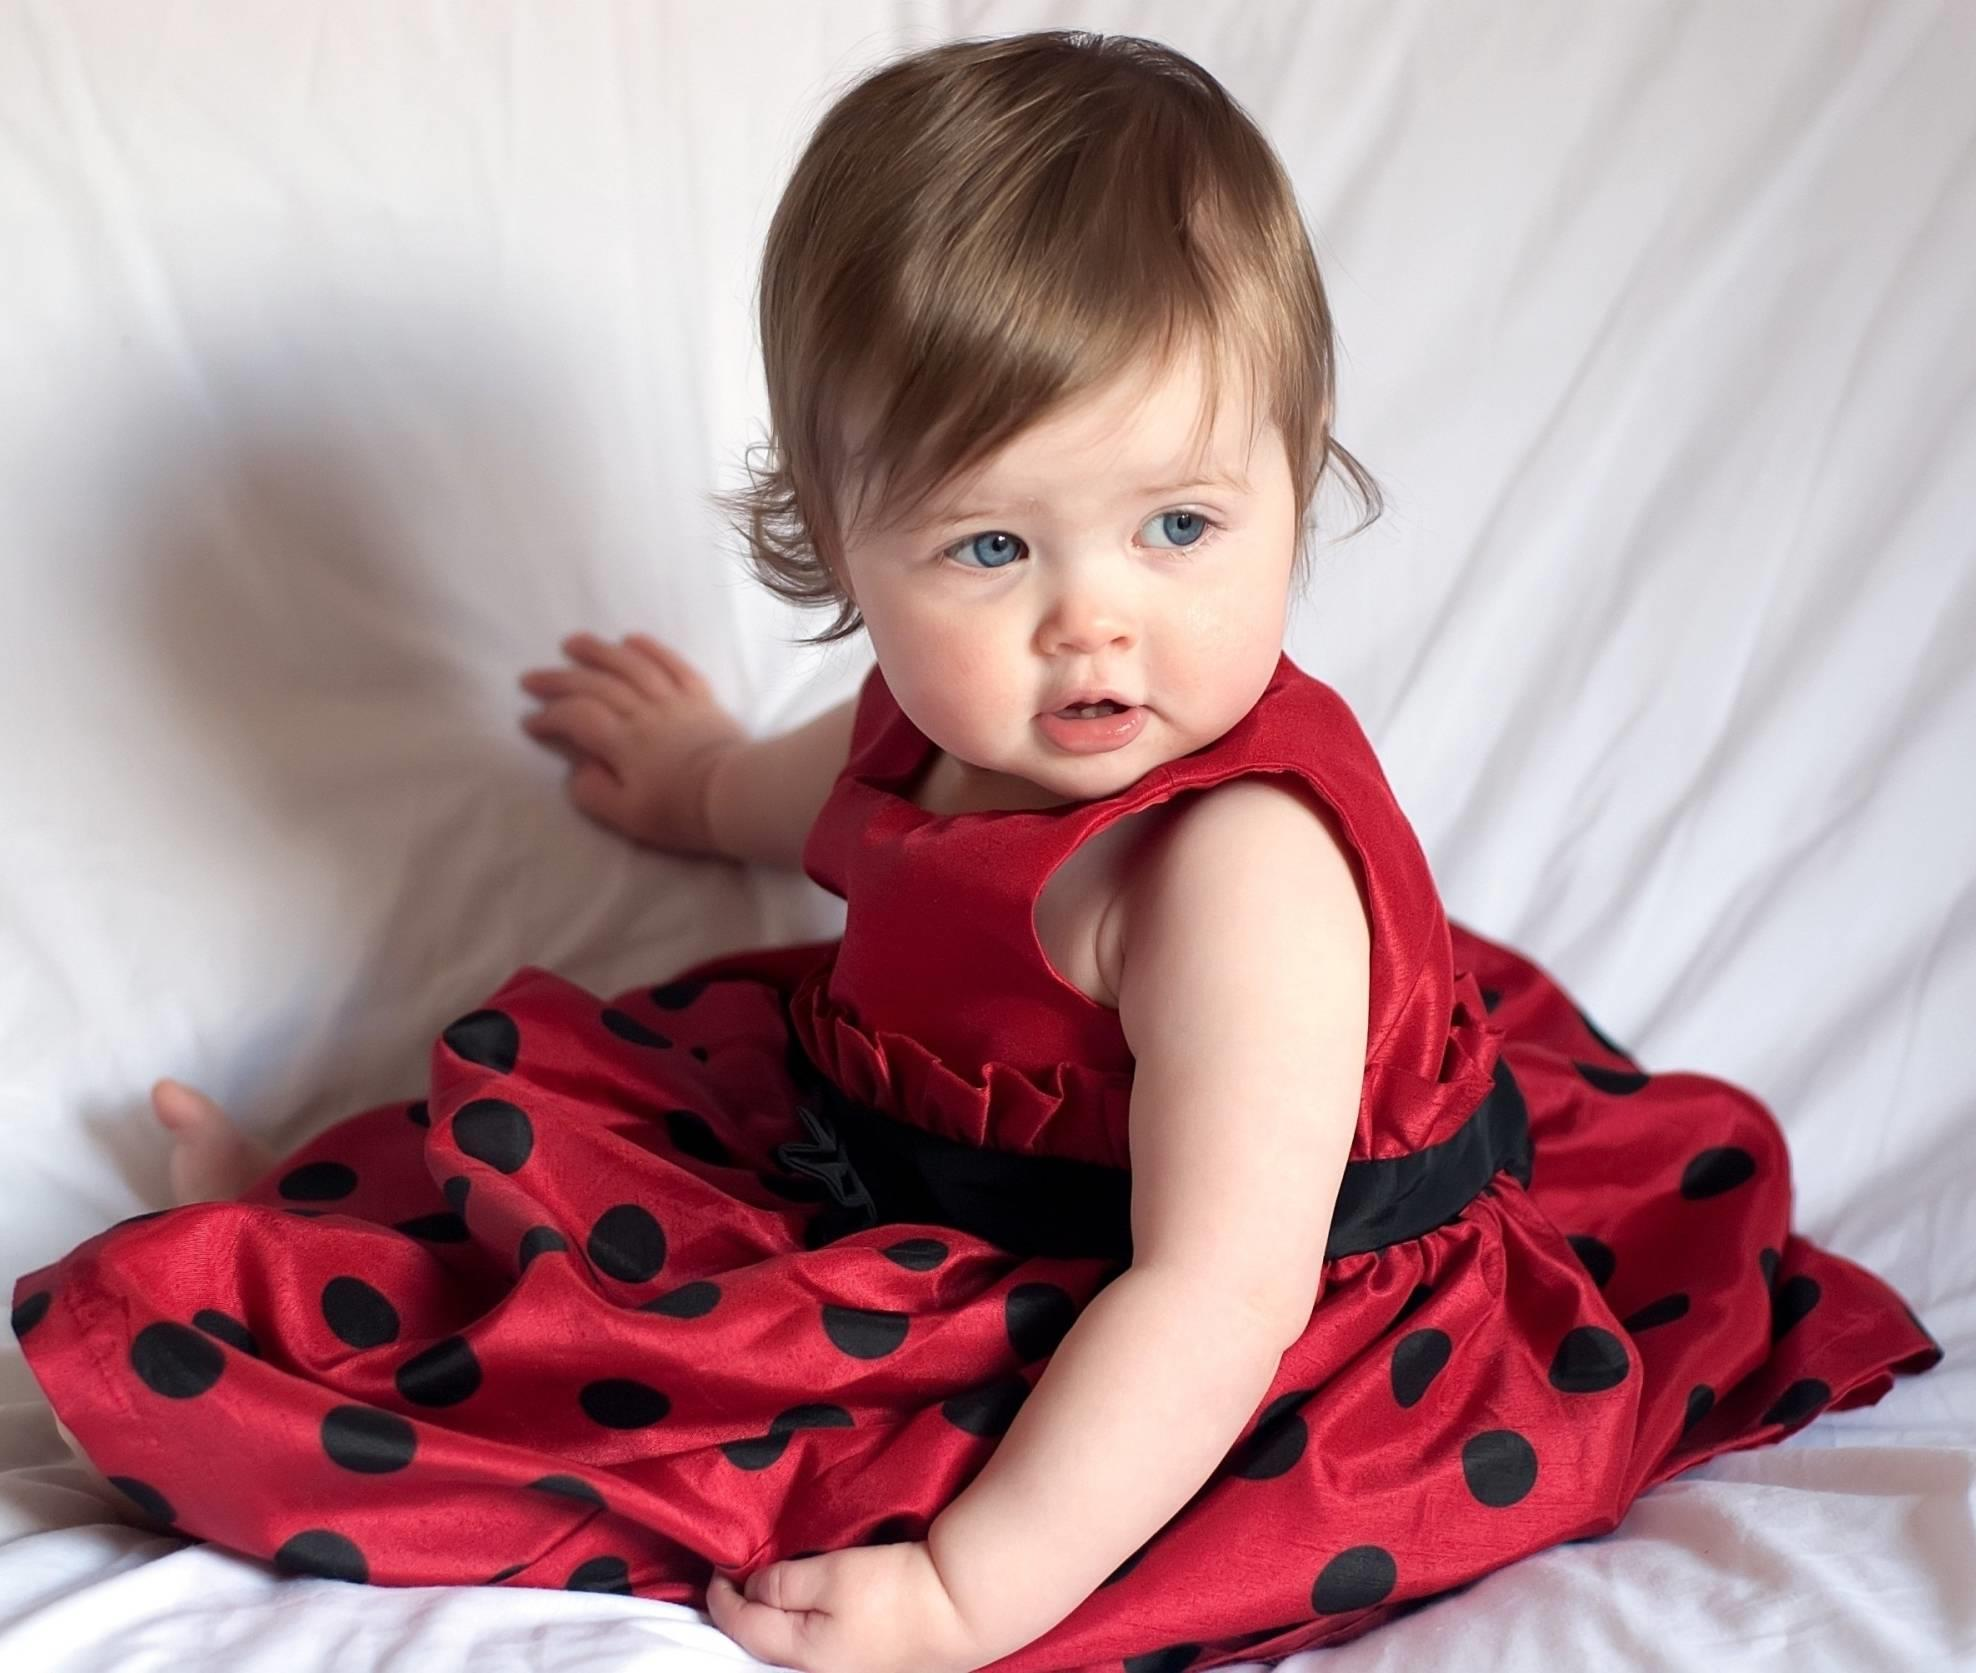 cutest baby girl red frock